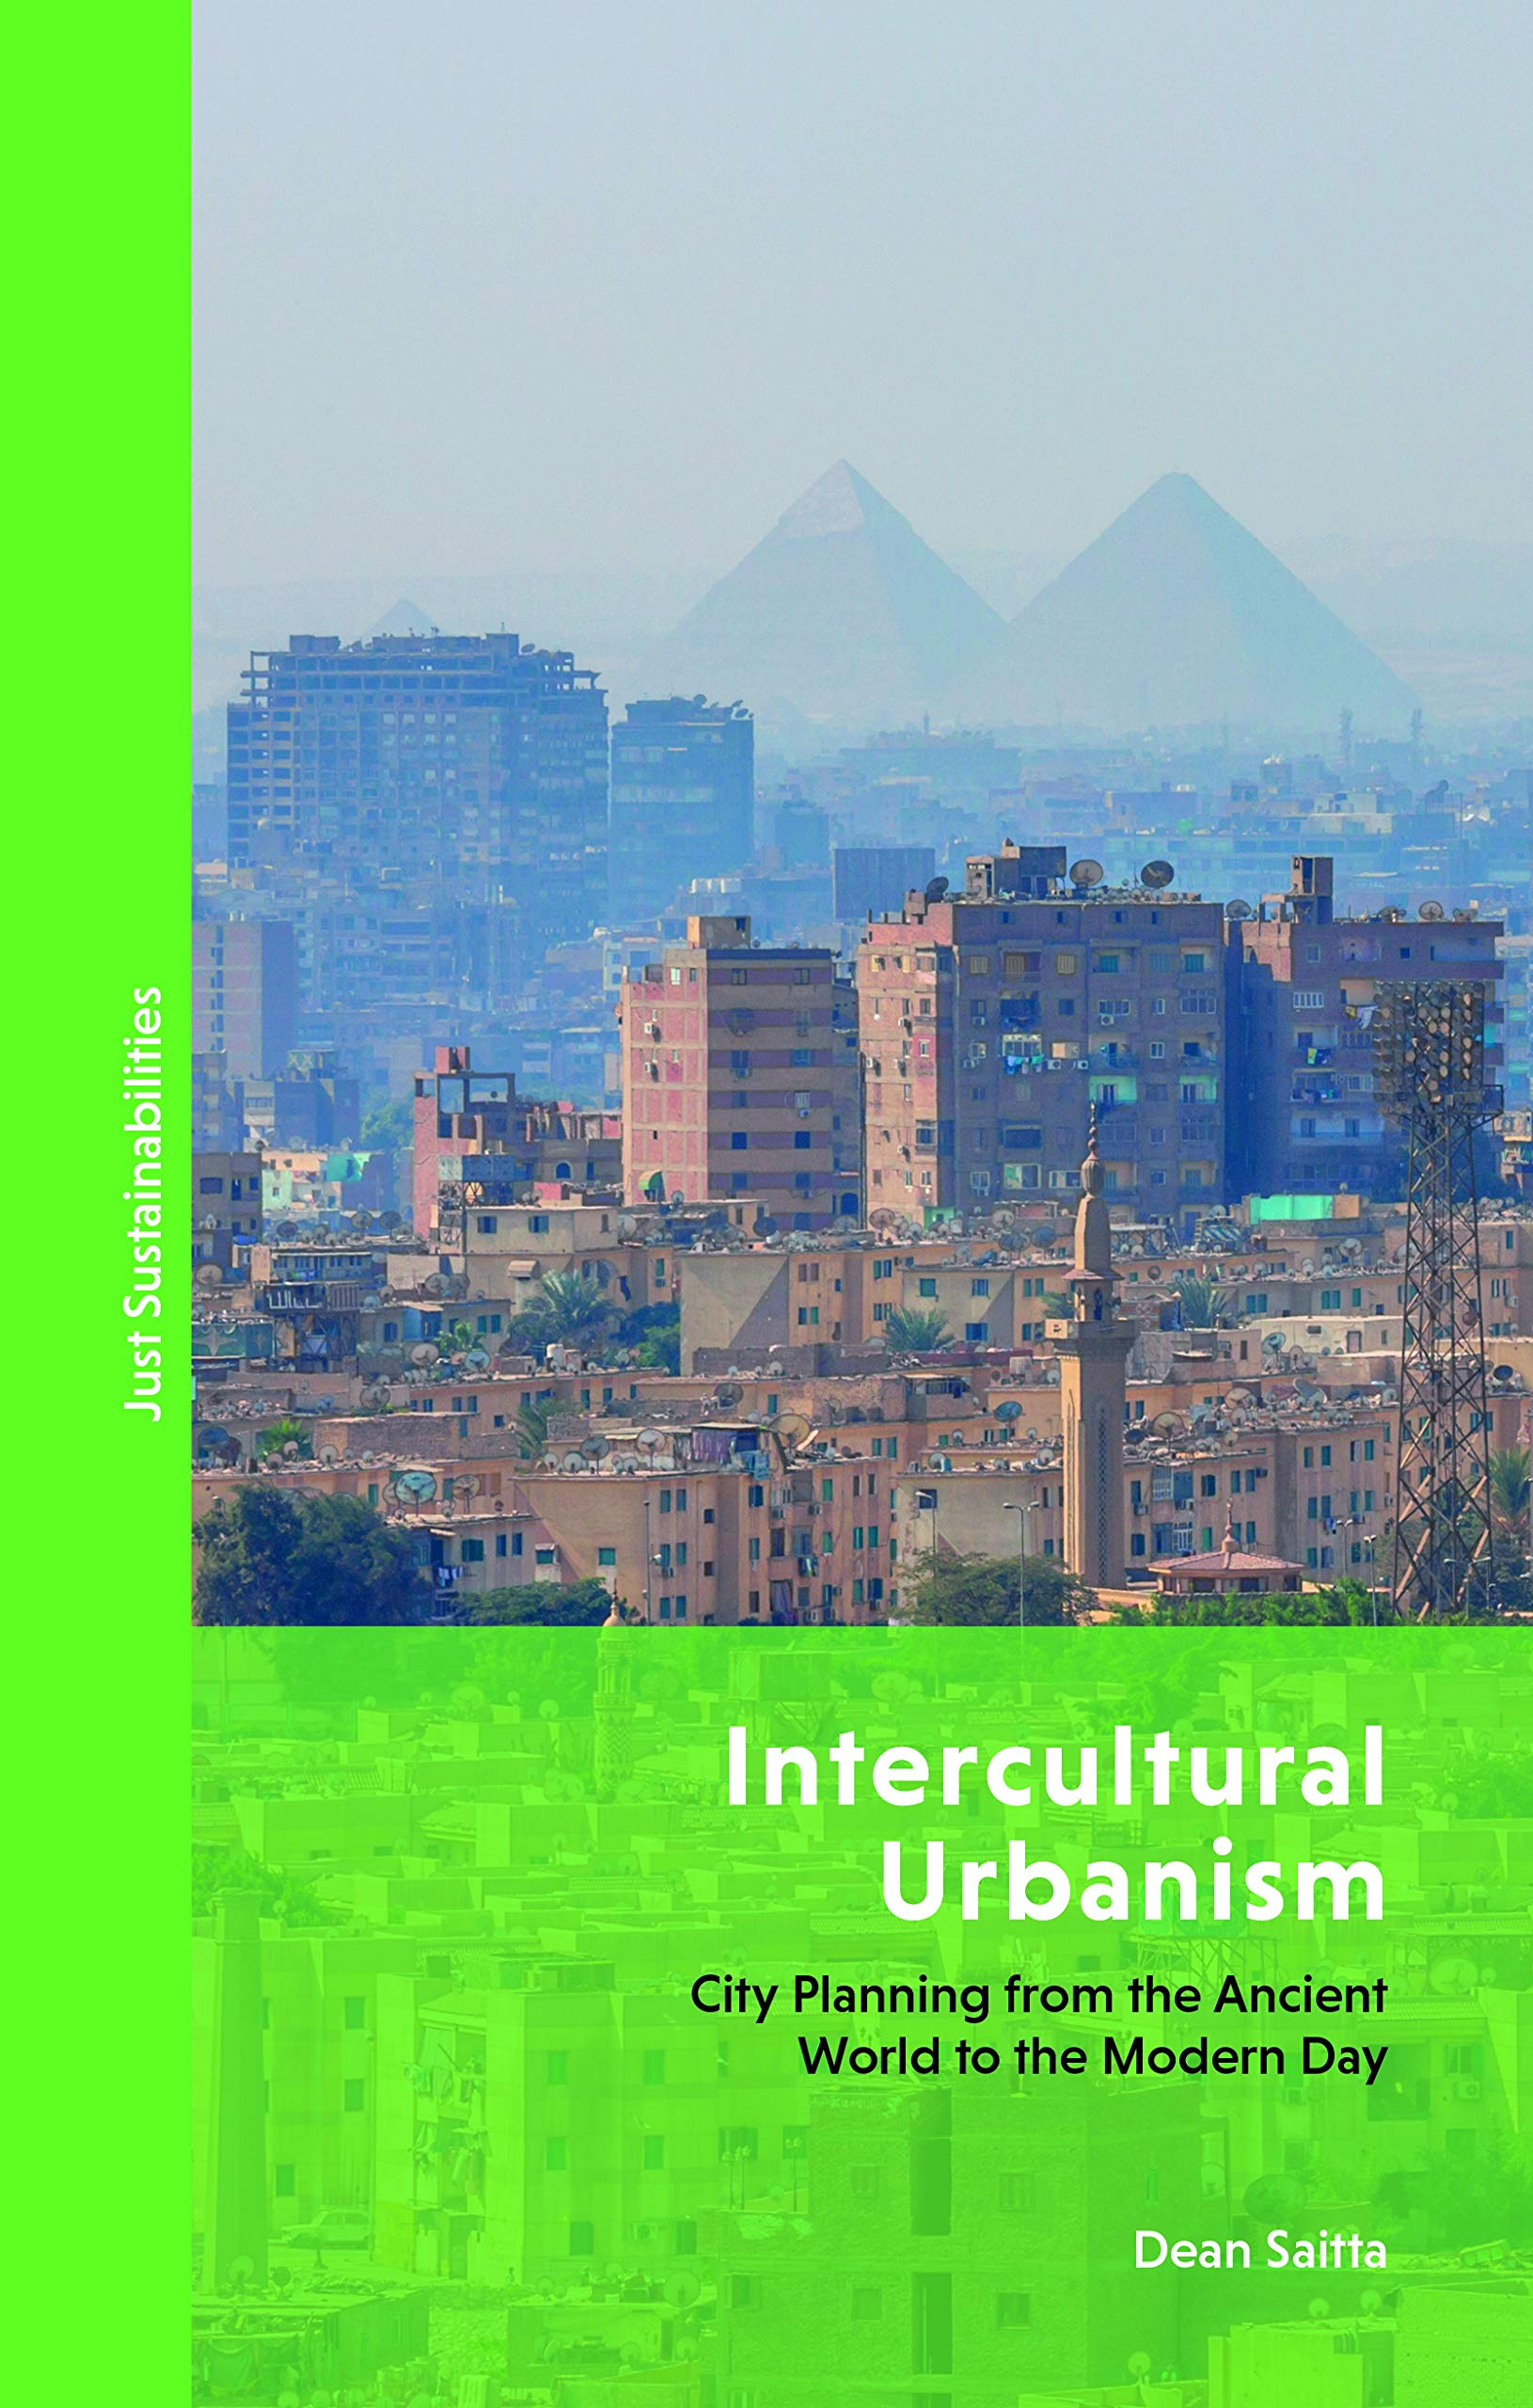 Intercultural Urbanism: City Planning from the Ancient World to the Modern Day (Just Sustainabilities)